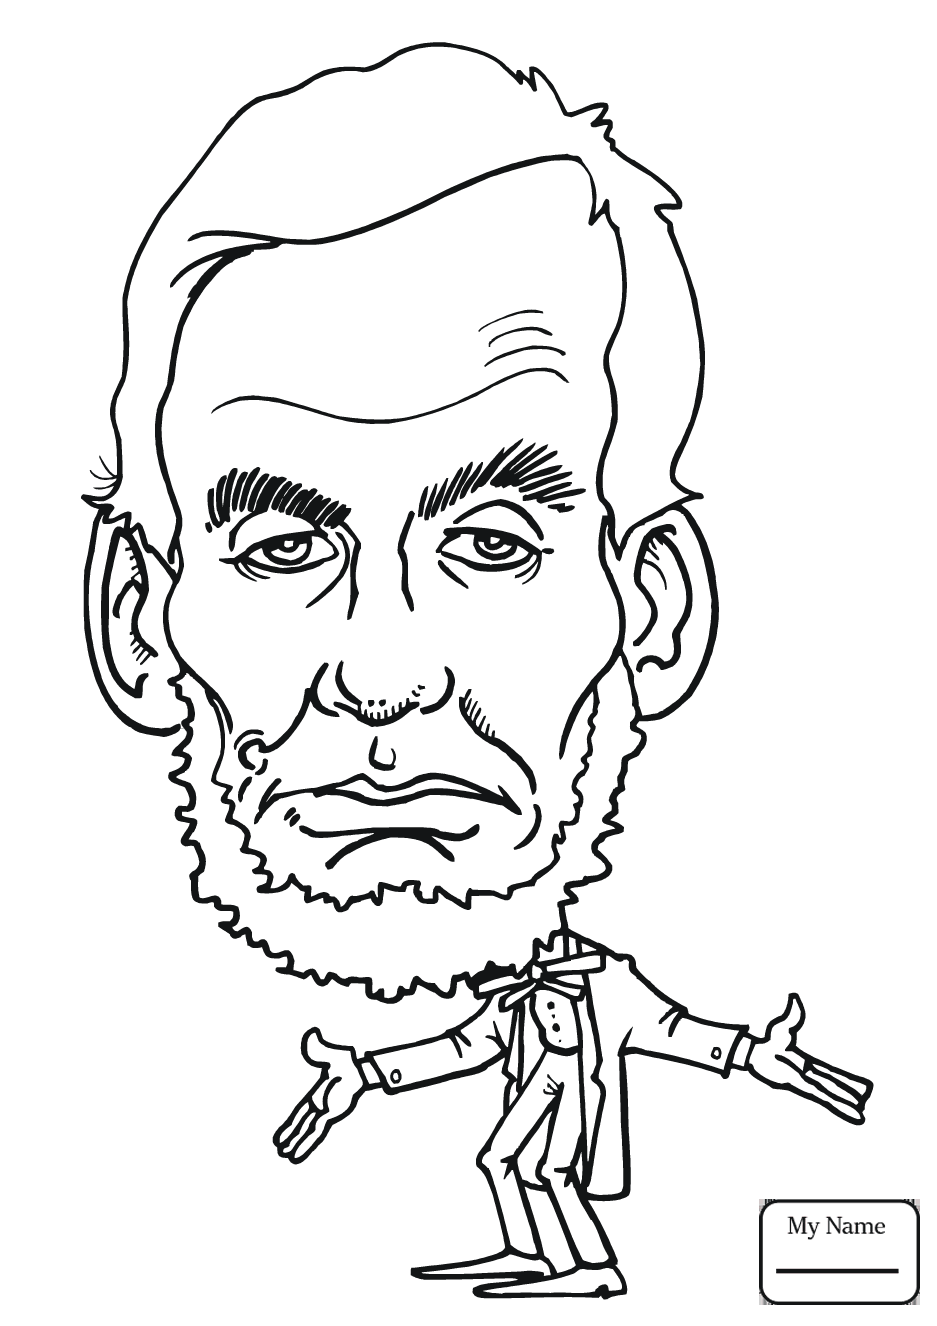 937x1326 Abraham Lincoln History Abraham Lincoln Caricature Coloring Pages